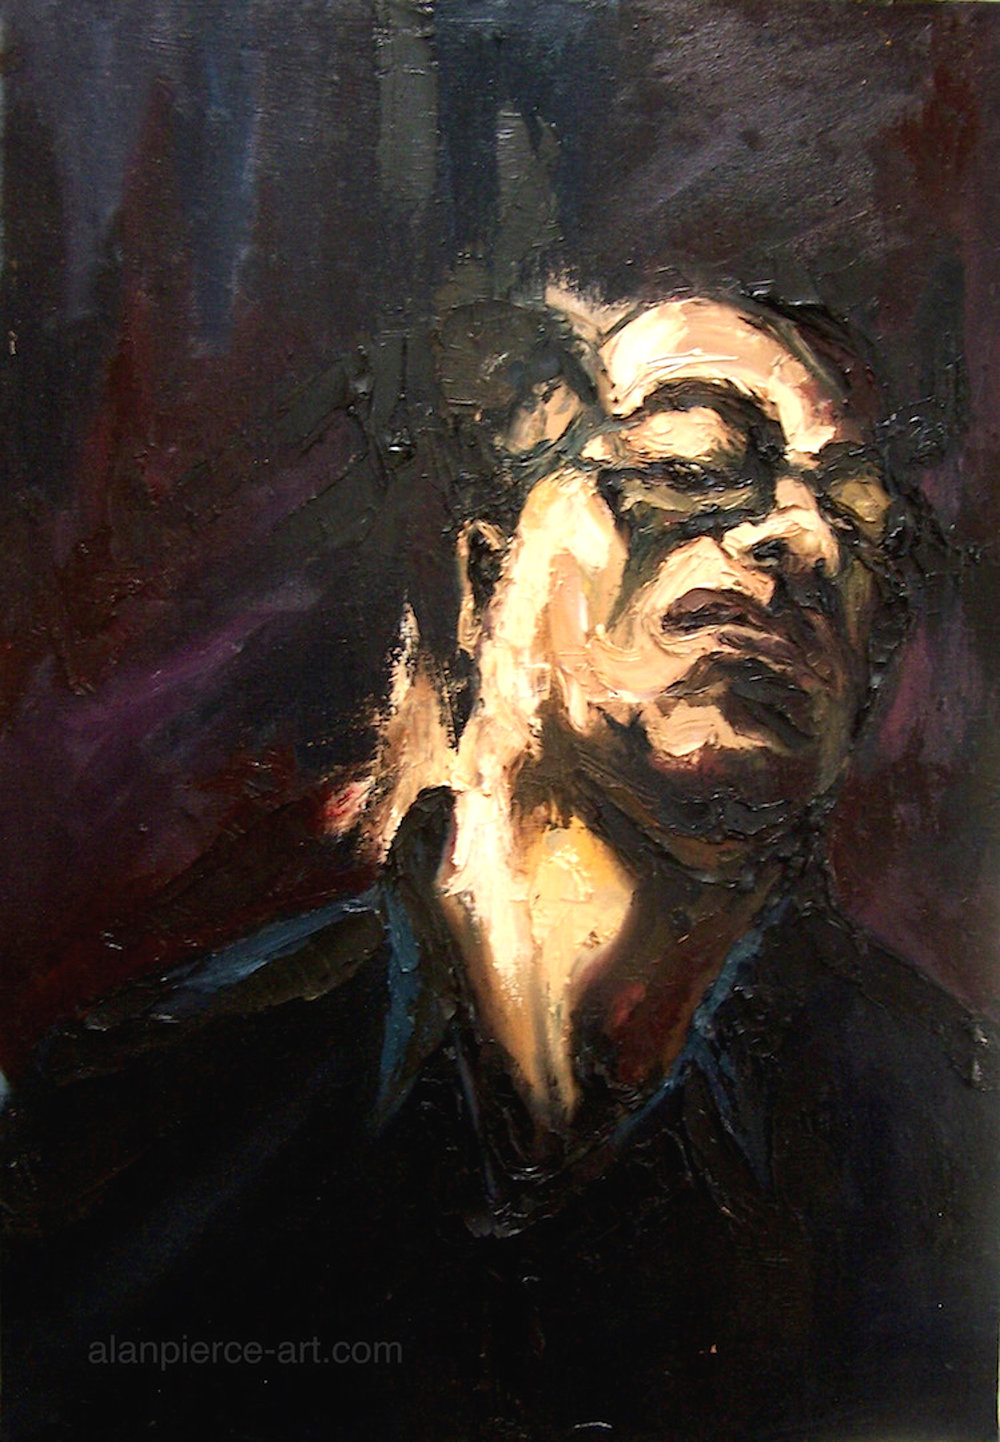 SELF-PORTRAIT-OIL PAINTING-ALAN PIERCE.jpg